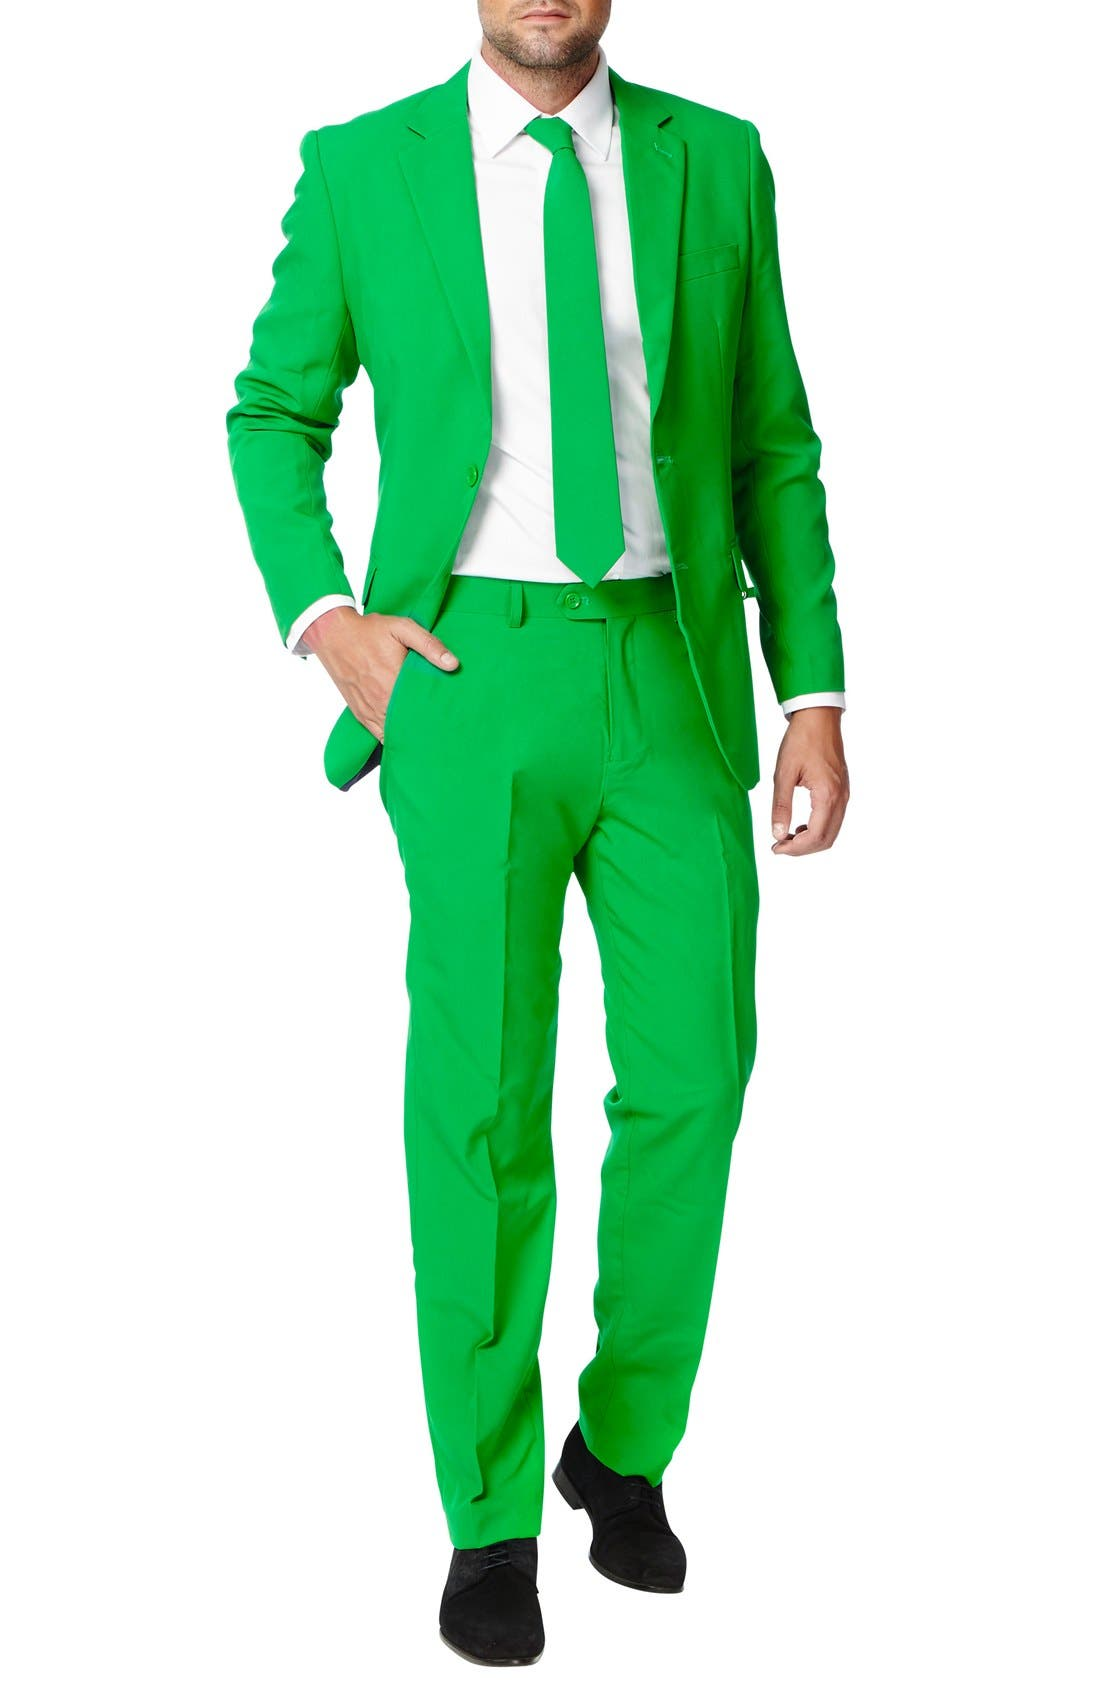 'Evergreen' Trim Fit Suit with Tie,                             Main thumbnail 1, color,                             300